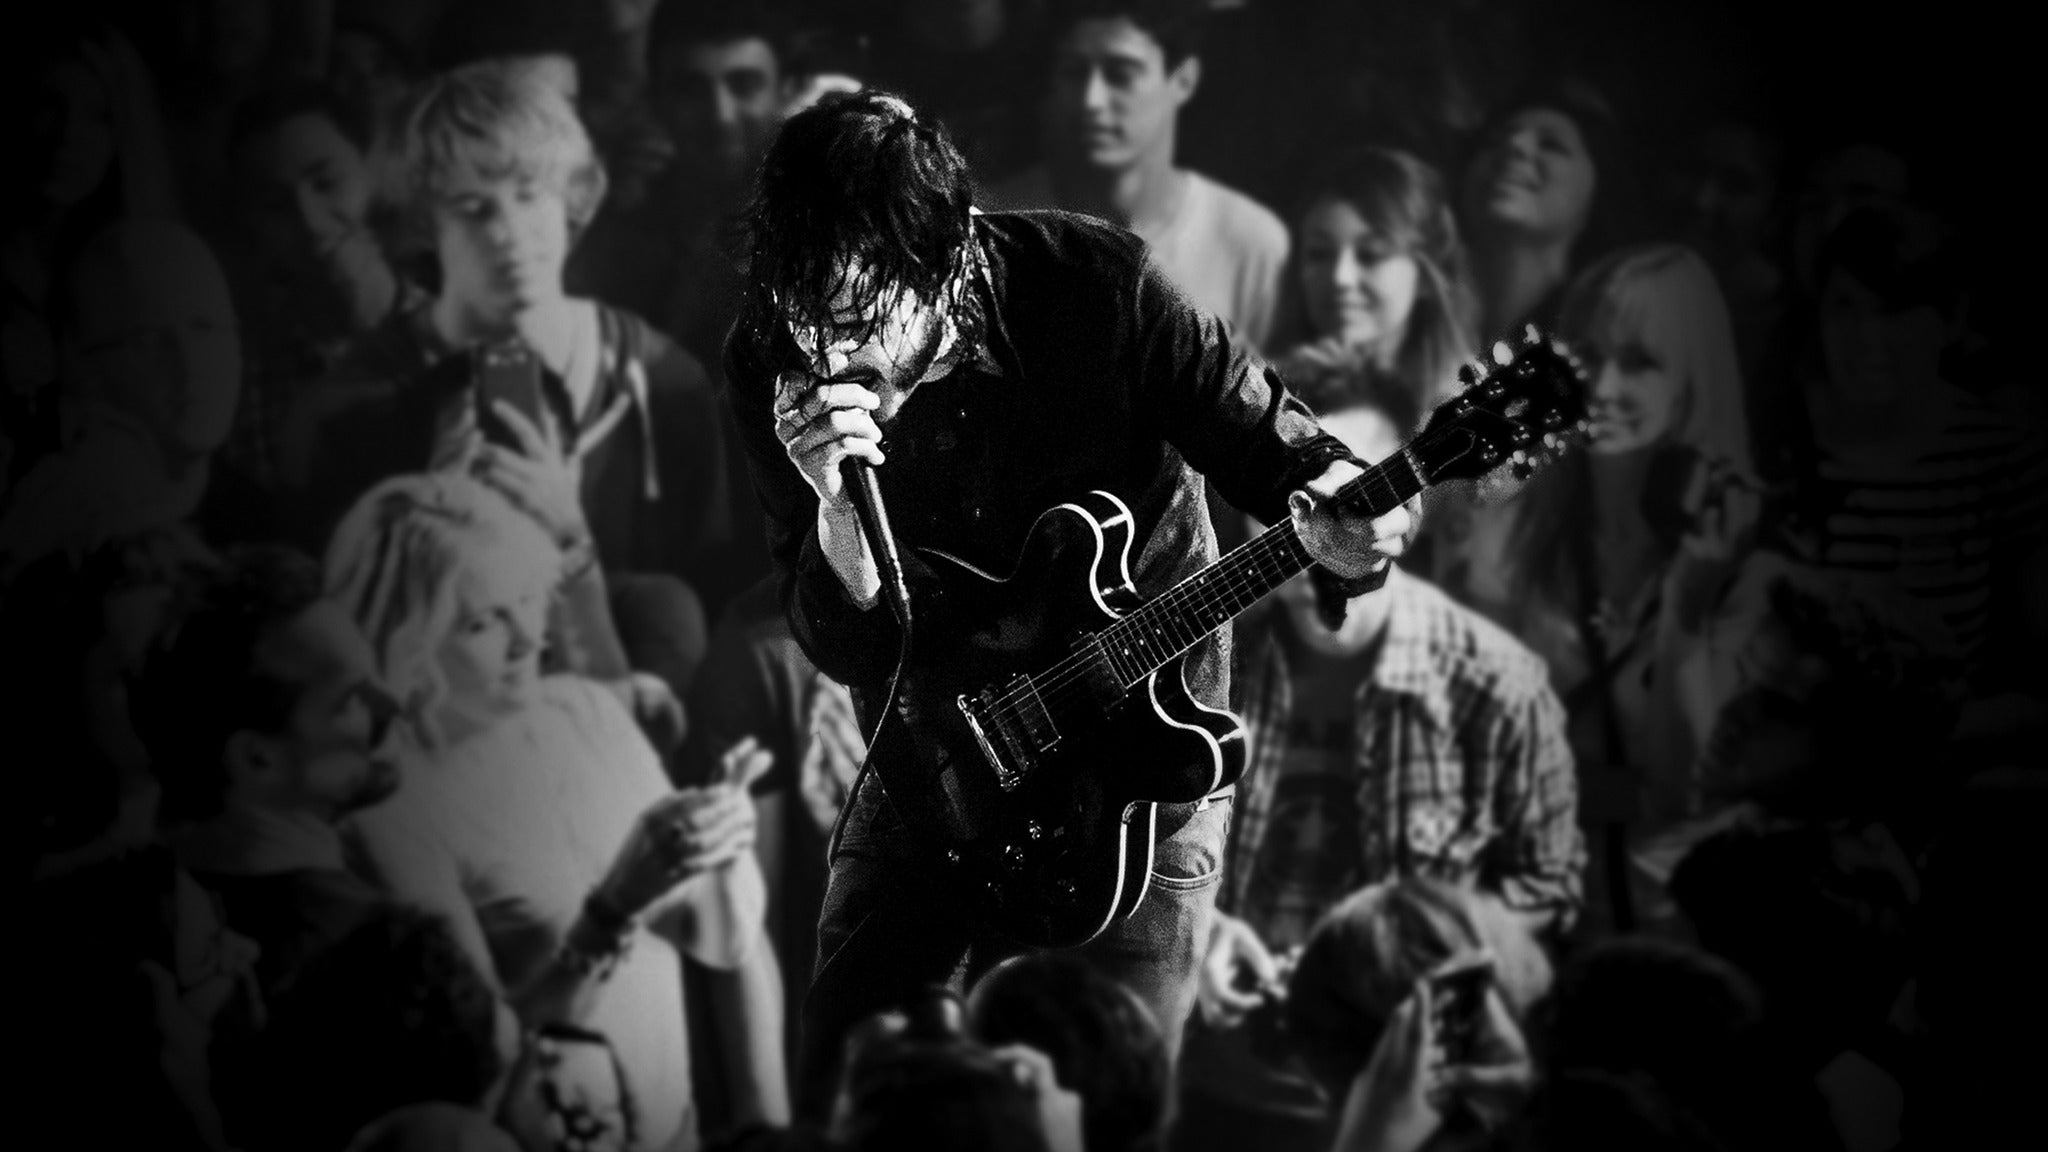 Sea.Hear.Now Presents:  Reignwolf w/ Special Guests - Asbury Park, NJ 07712